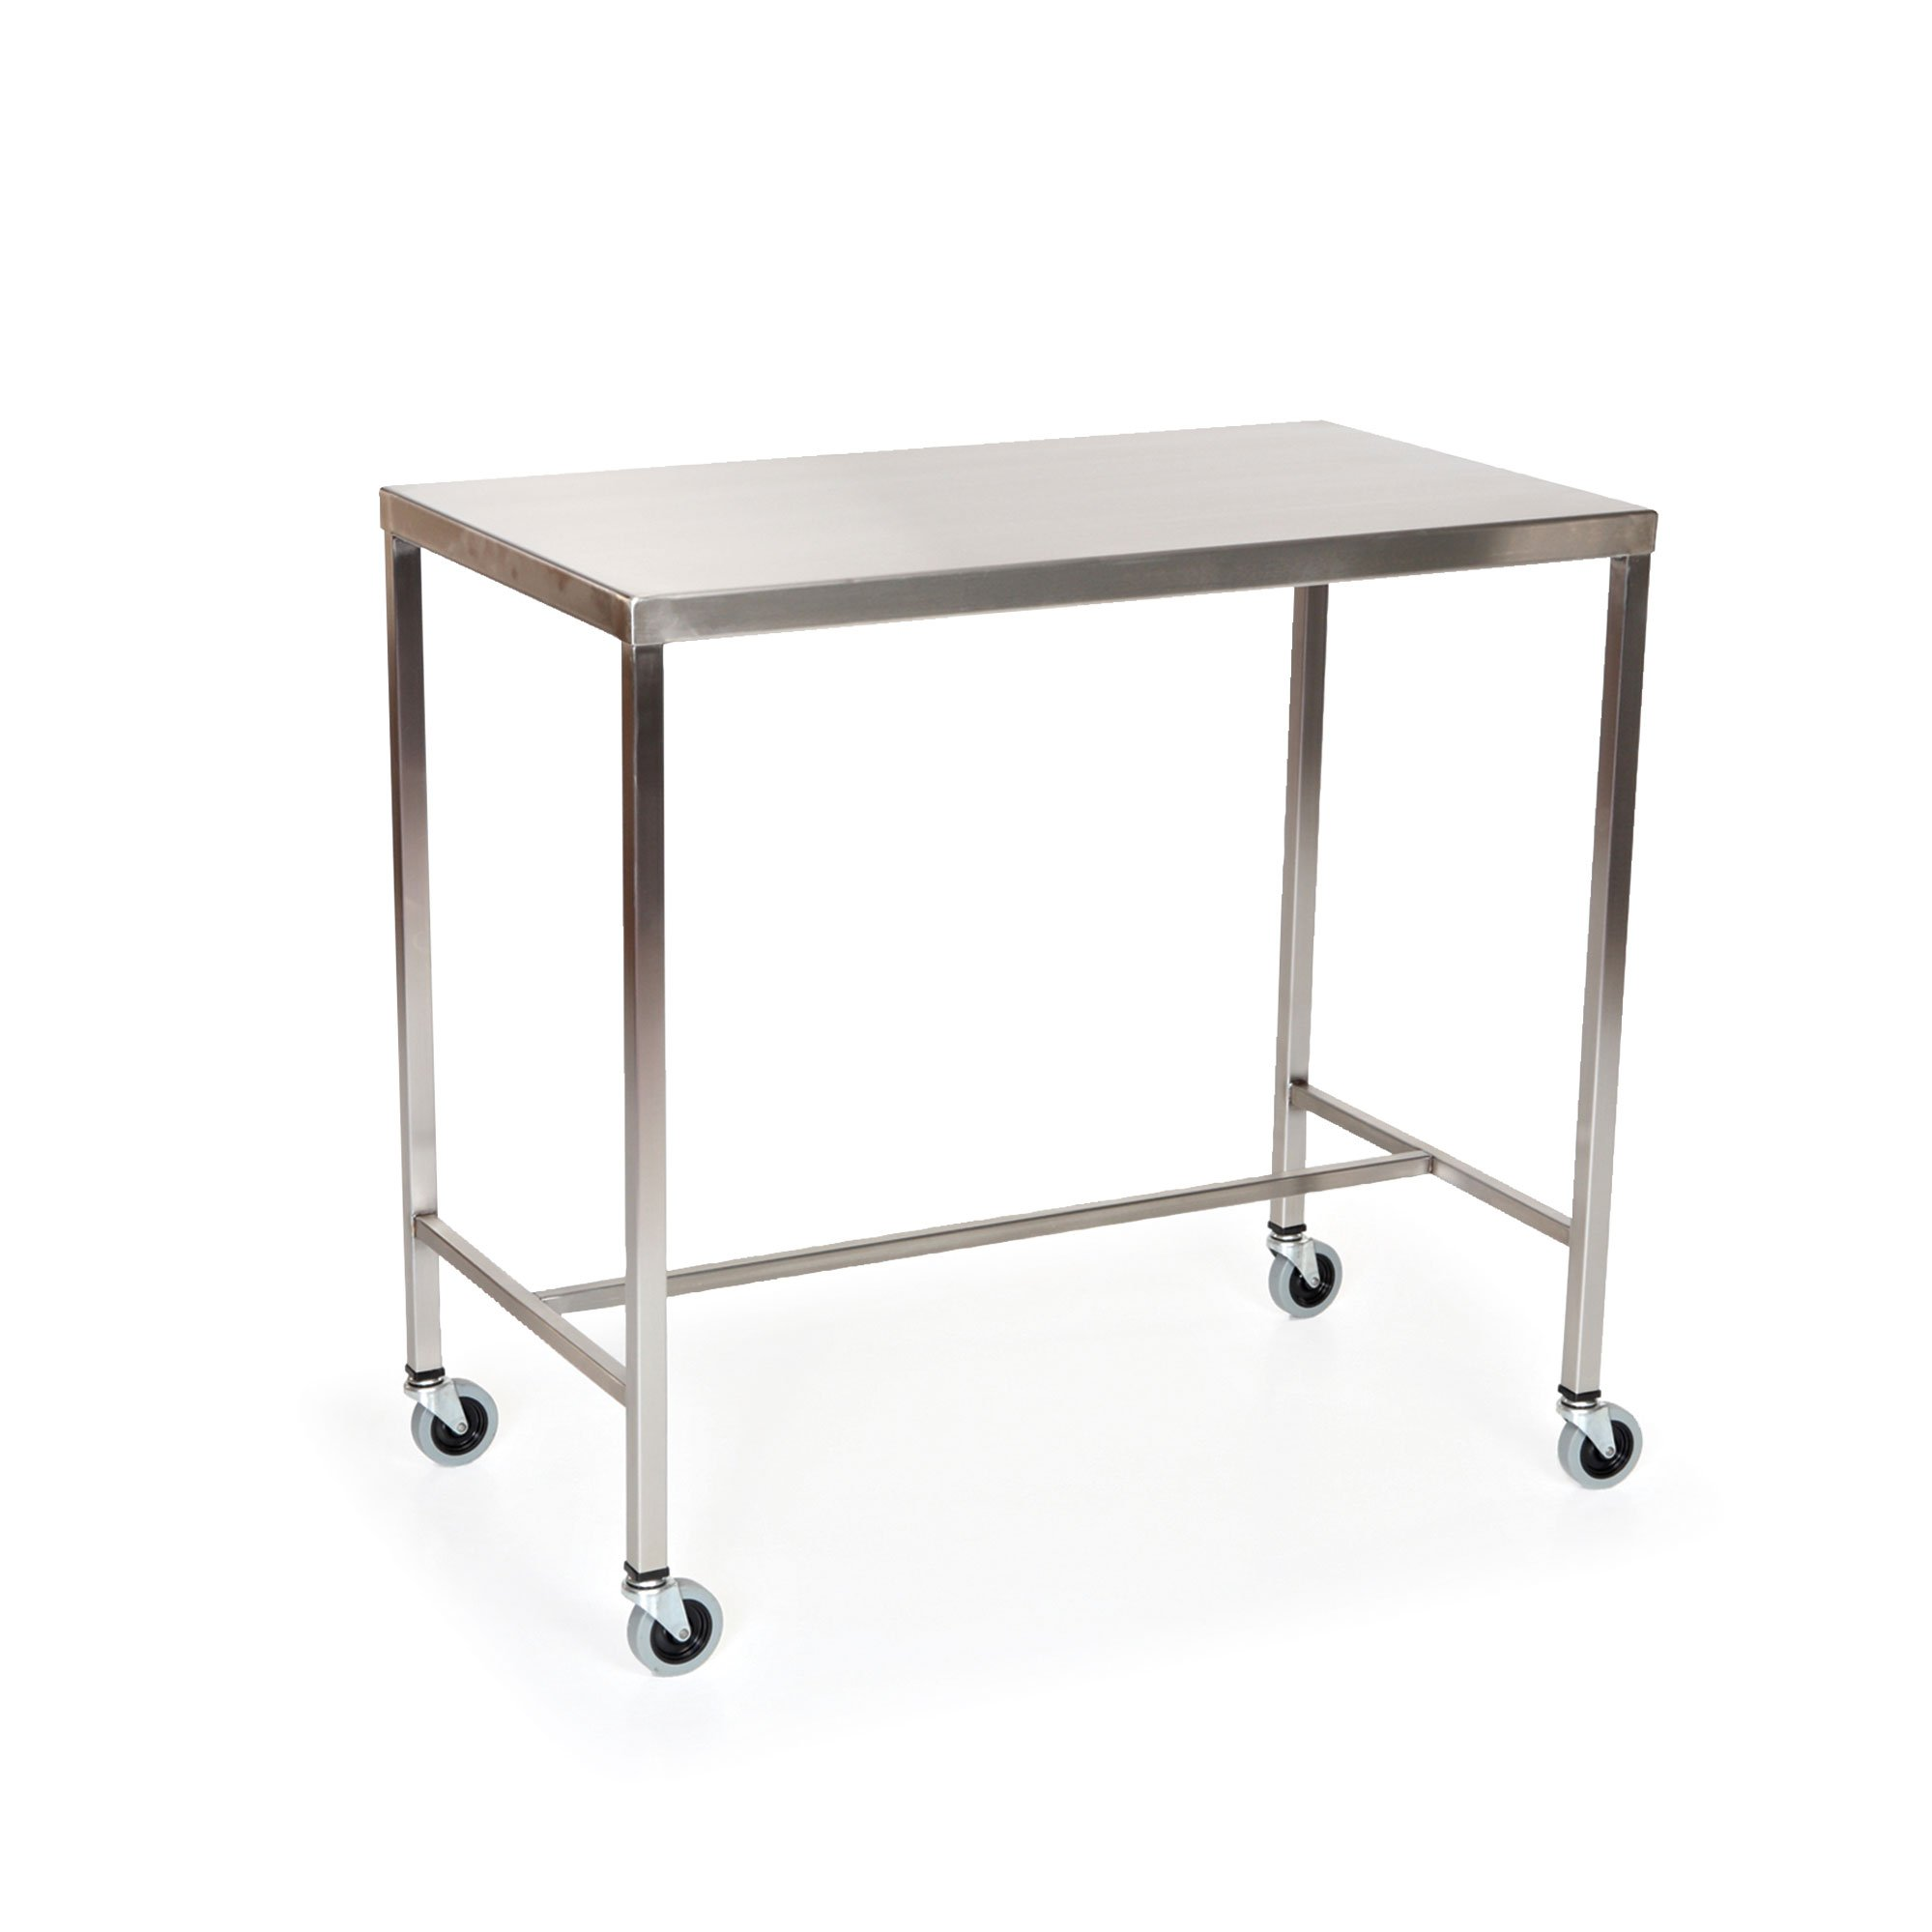 Stainless Steel Instrument Table with H-Brace 36''L x 20''W x 34''H by MID-CENTRAL MEDICAL